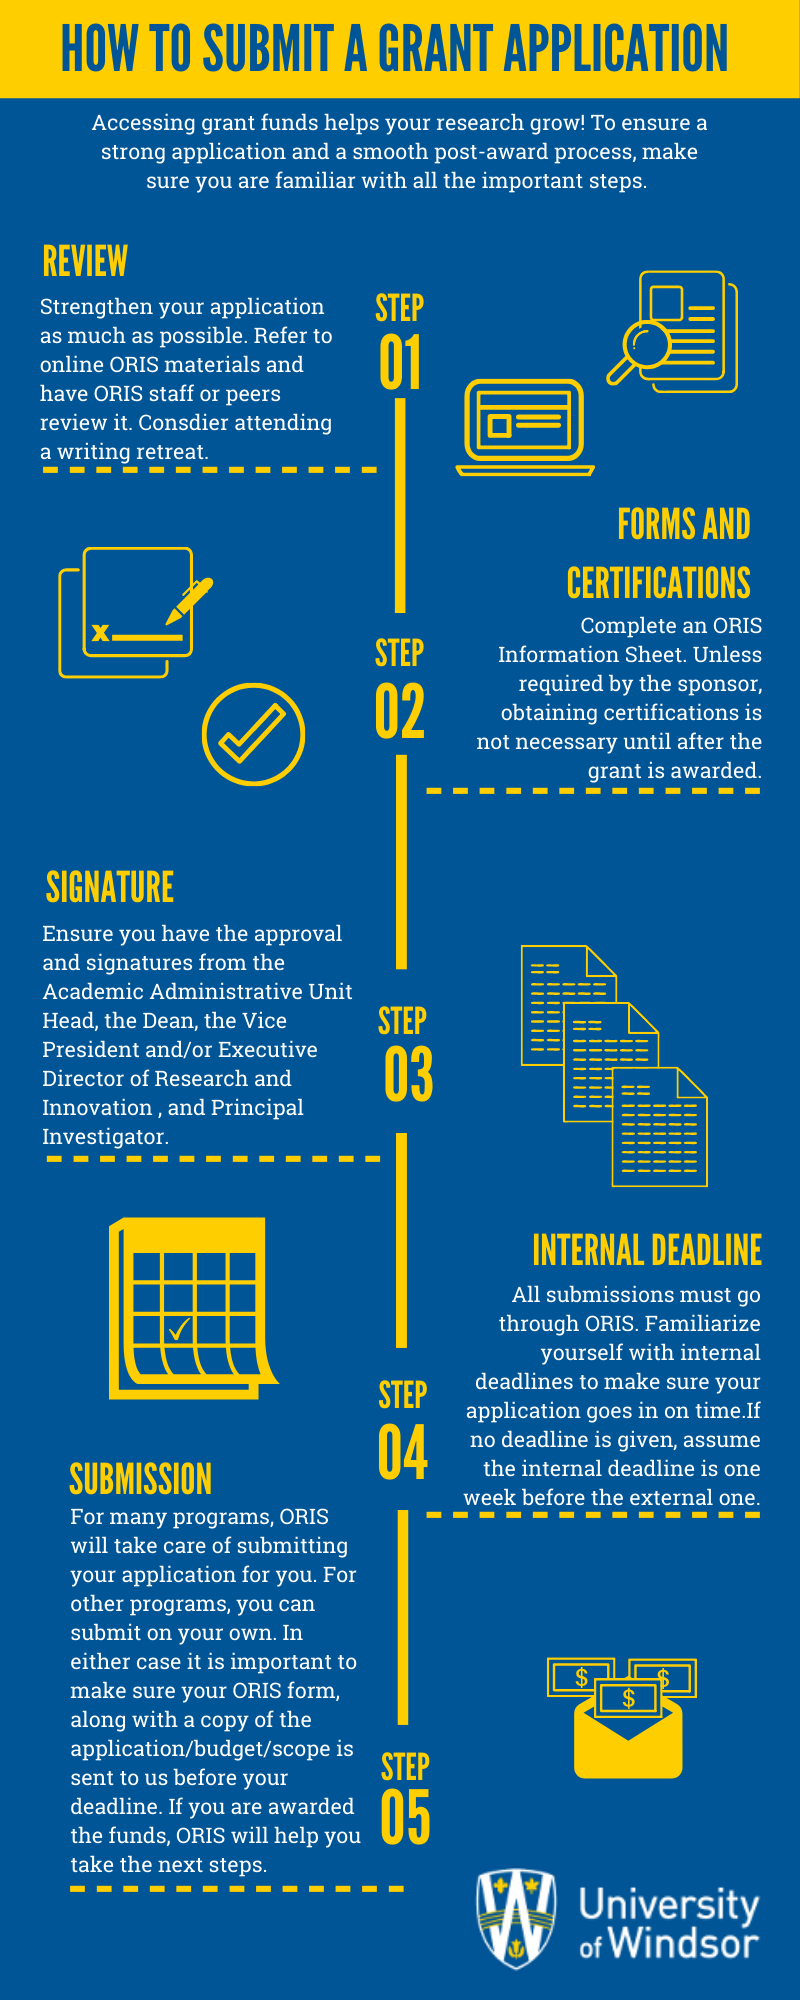 How to Submit a Grant Application